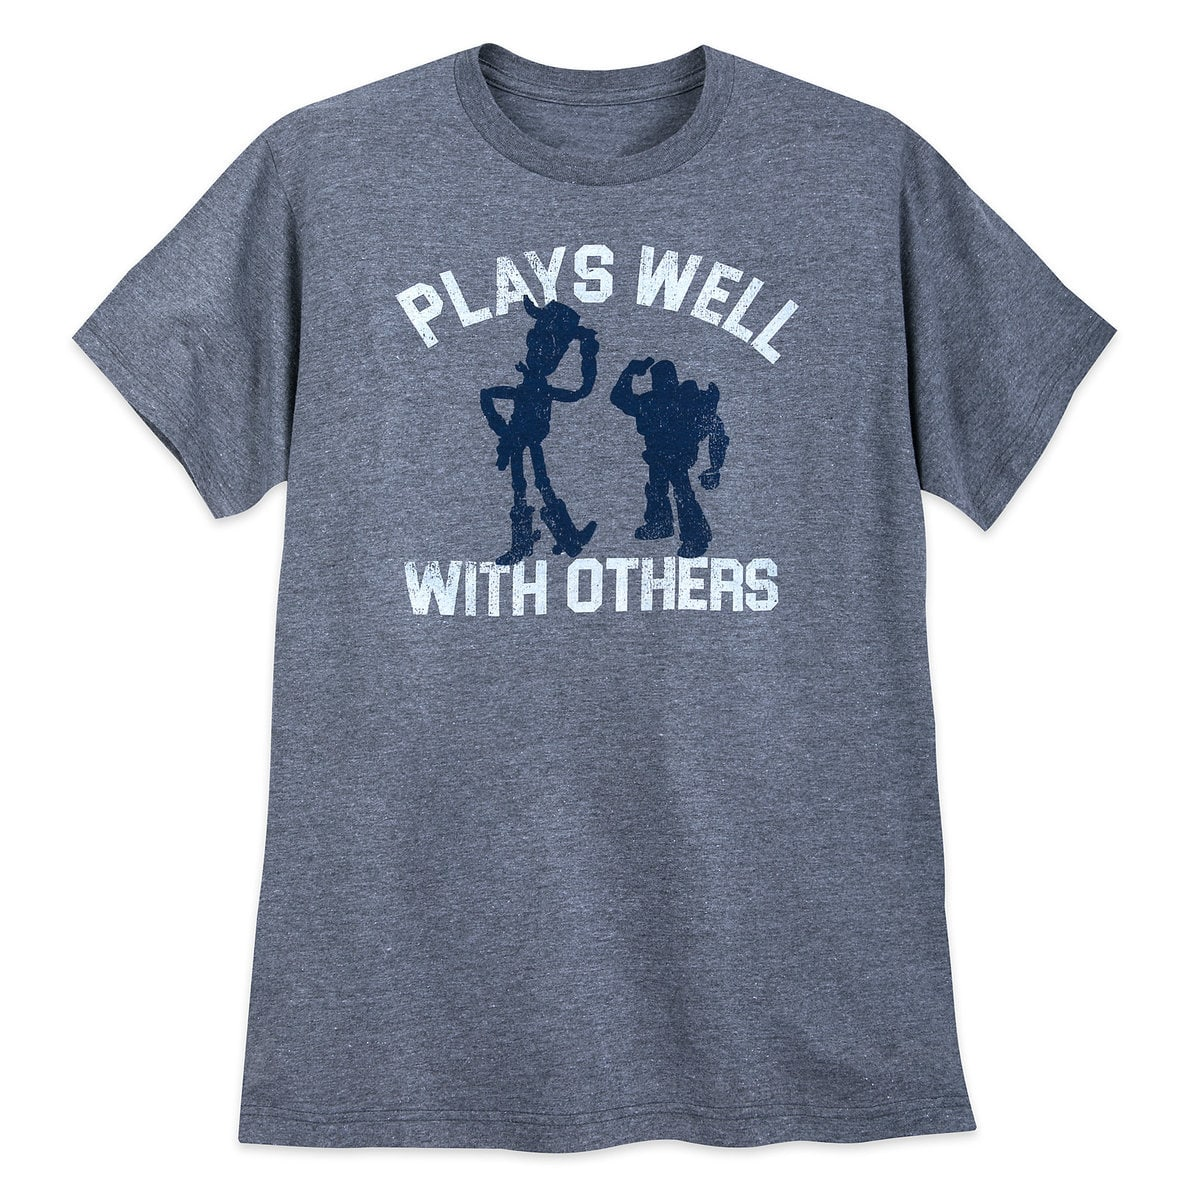 Product Image of Toy Story ''Plays Well With Others'' T-Shirt for Adults # 1